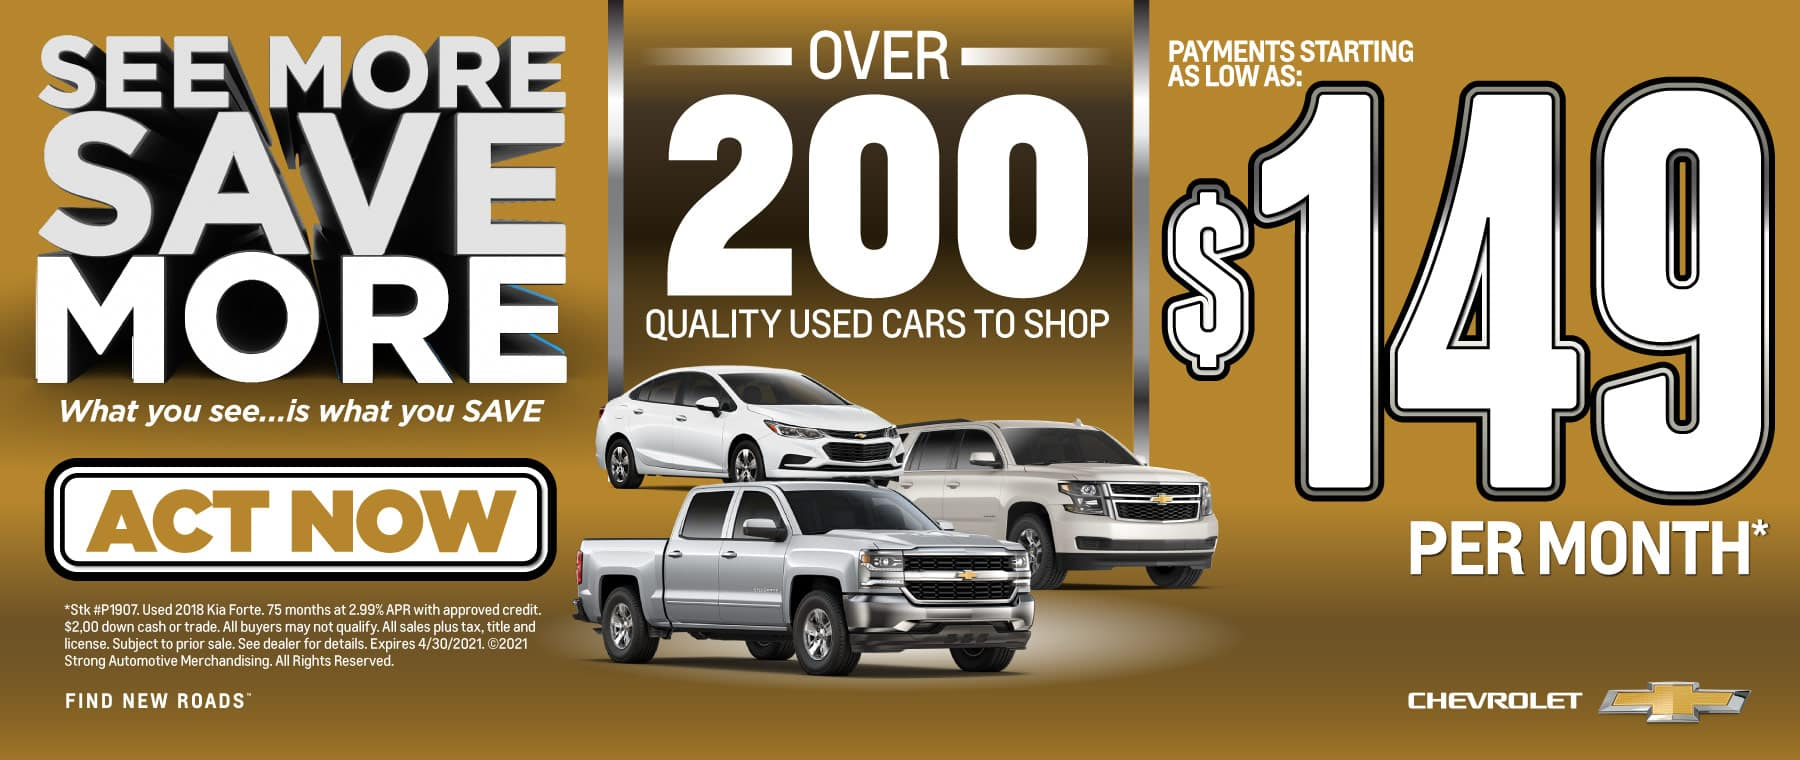 Over 200 used cars to shop with payments starting as low as $149 per month   Act Now